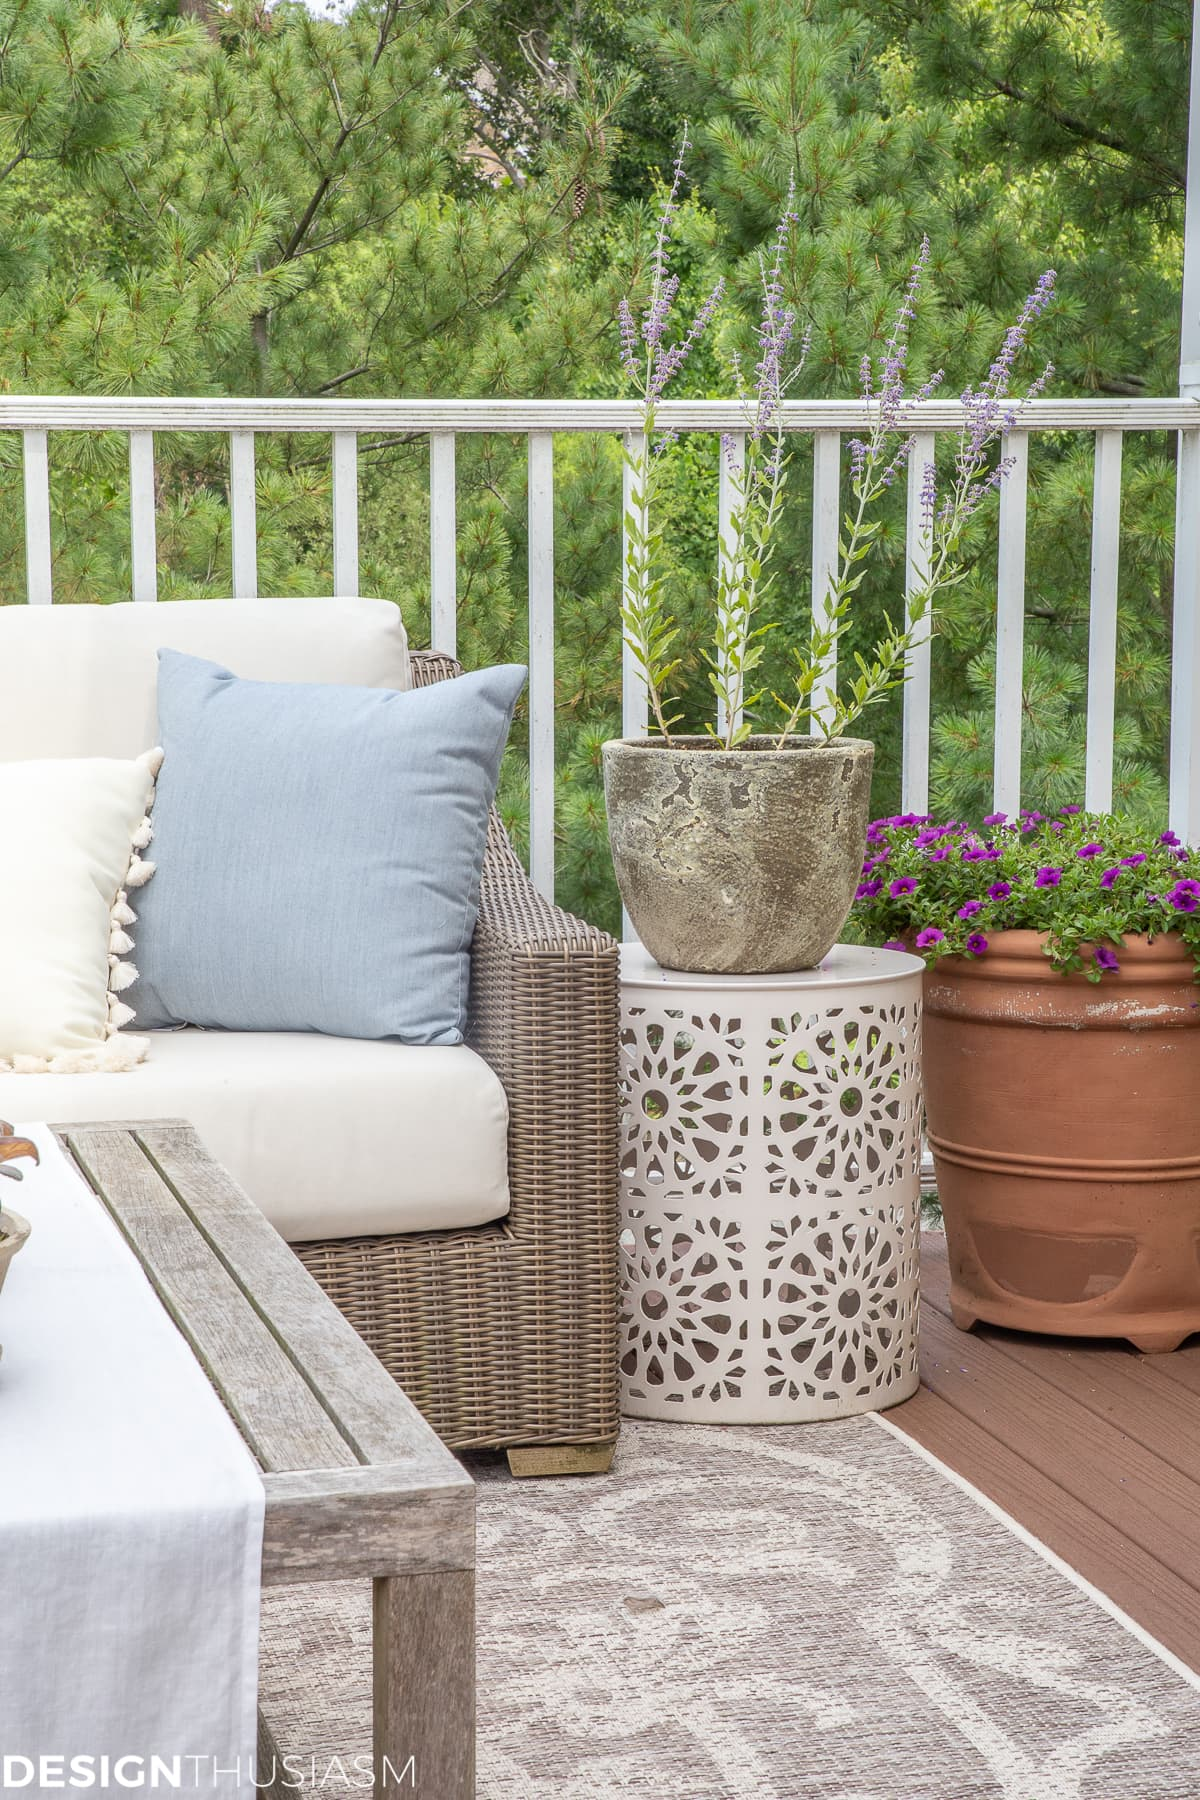 outdoor decor planters and pillows